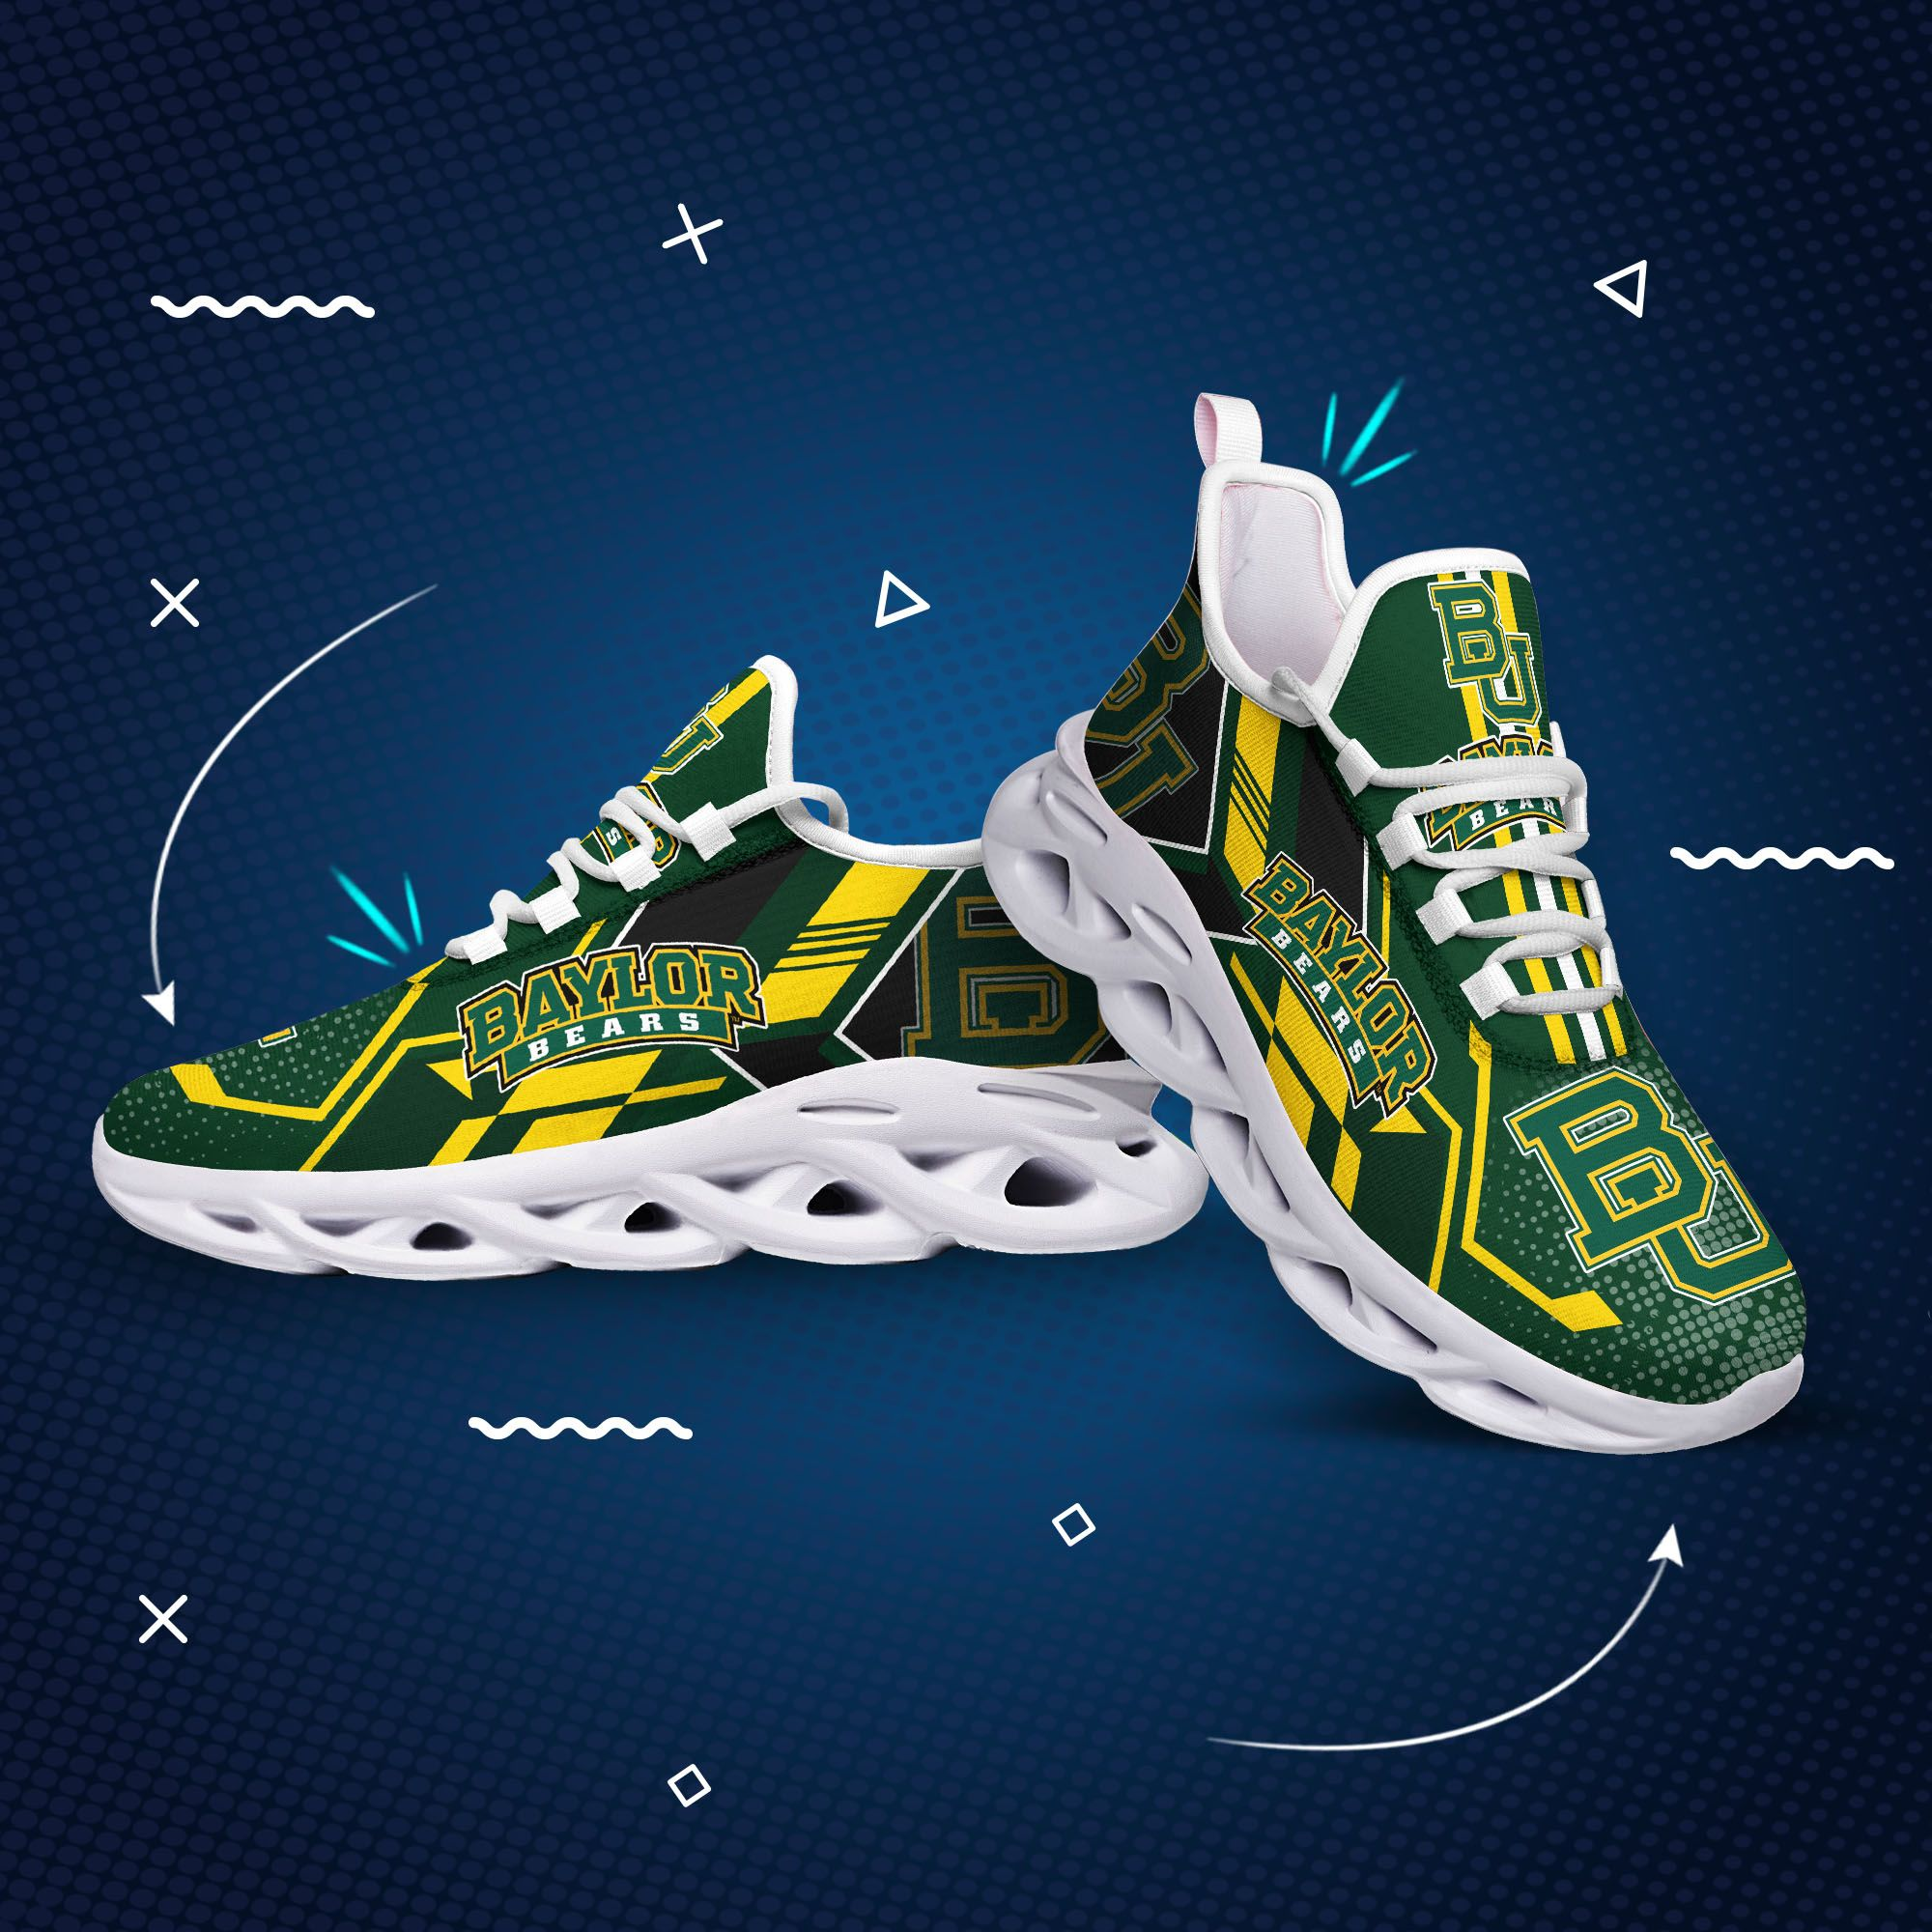 Baylor bears max soul clunky shoes1